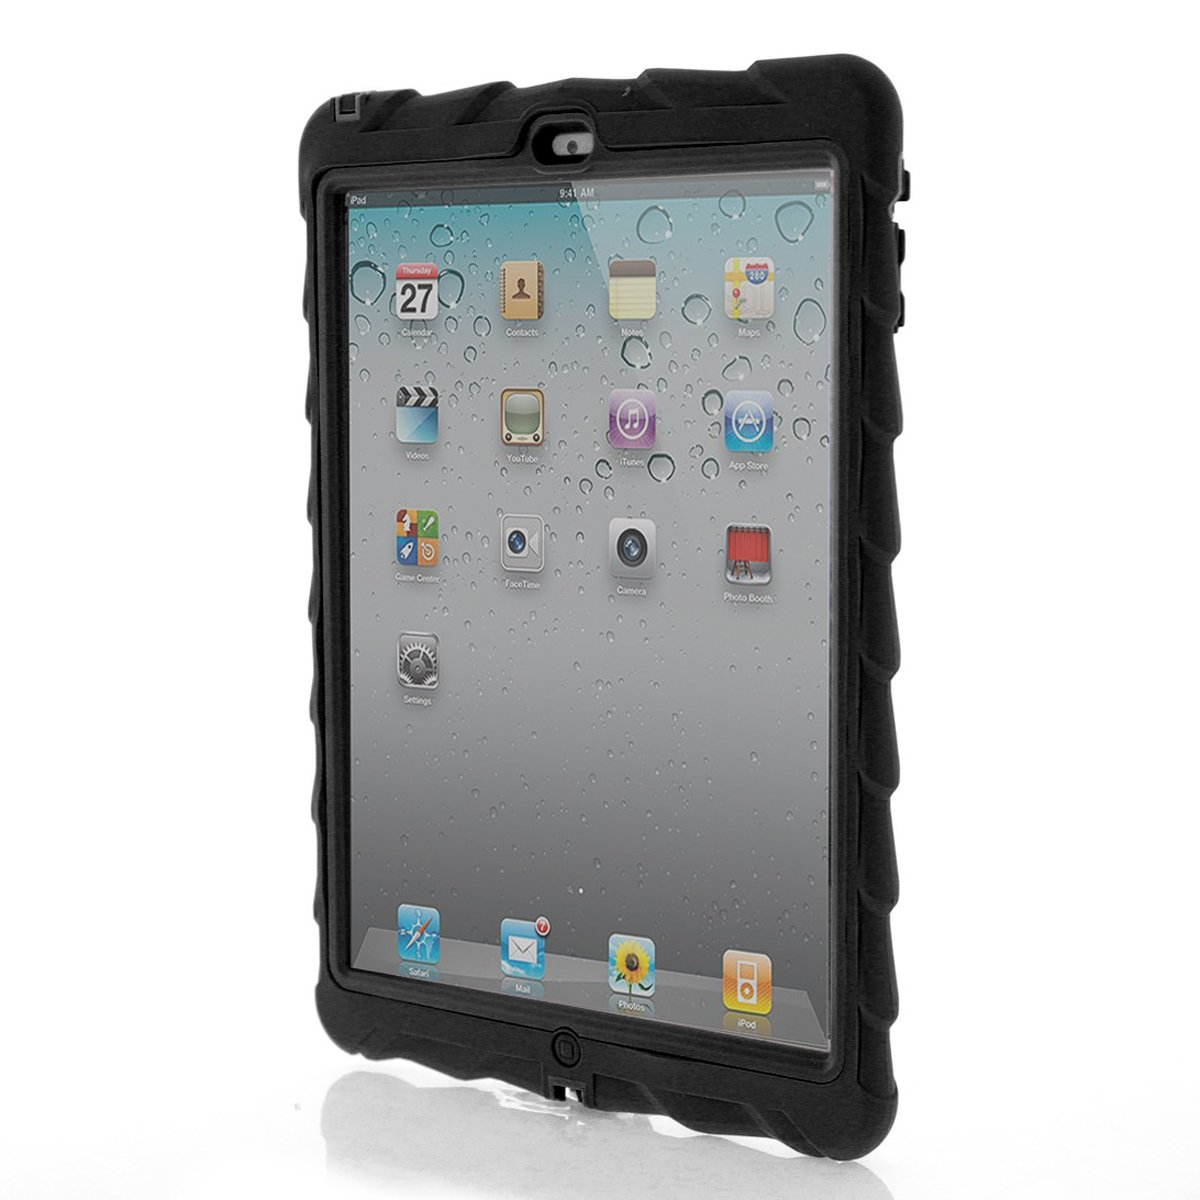 Amazon: Apple Ipad Air Drop Tech Black Gumdrop Cases Silicone Rugged  Shock Absorbing Protective Dual Layer Cover Case:puters & Accessories